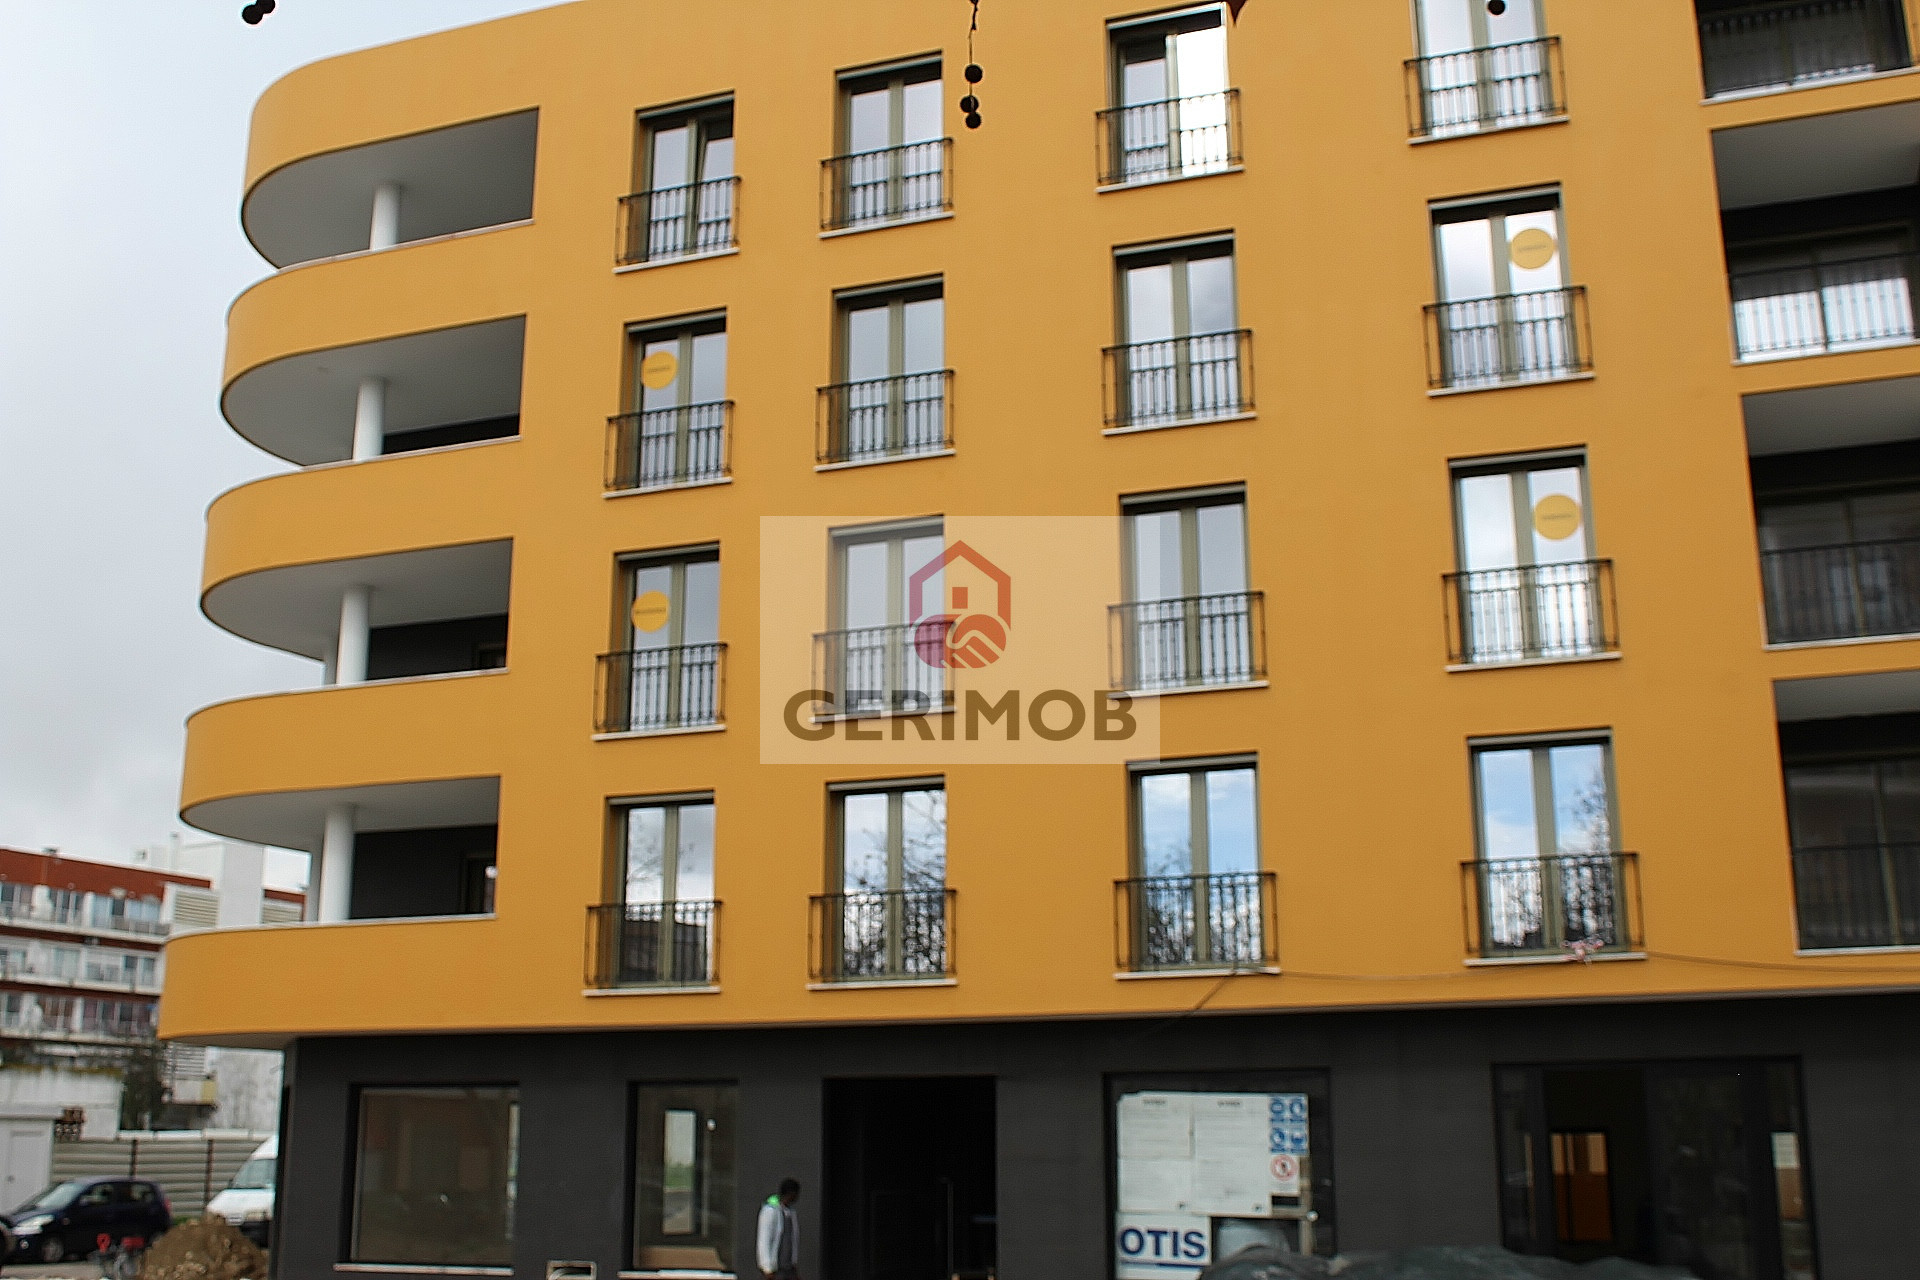 NEW one-bedroom apartment (25 km from Lisbon) with indoor parking and storage room (€180 000)